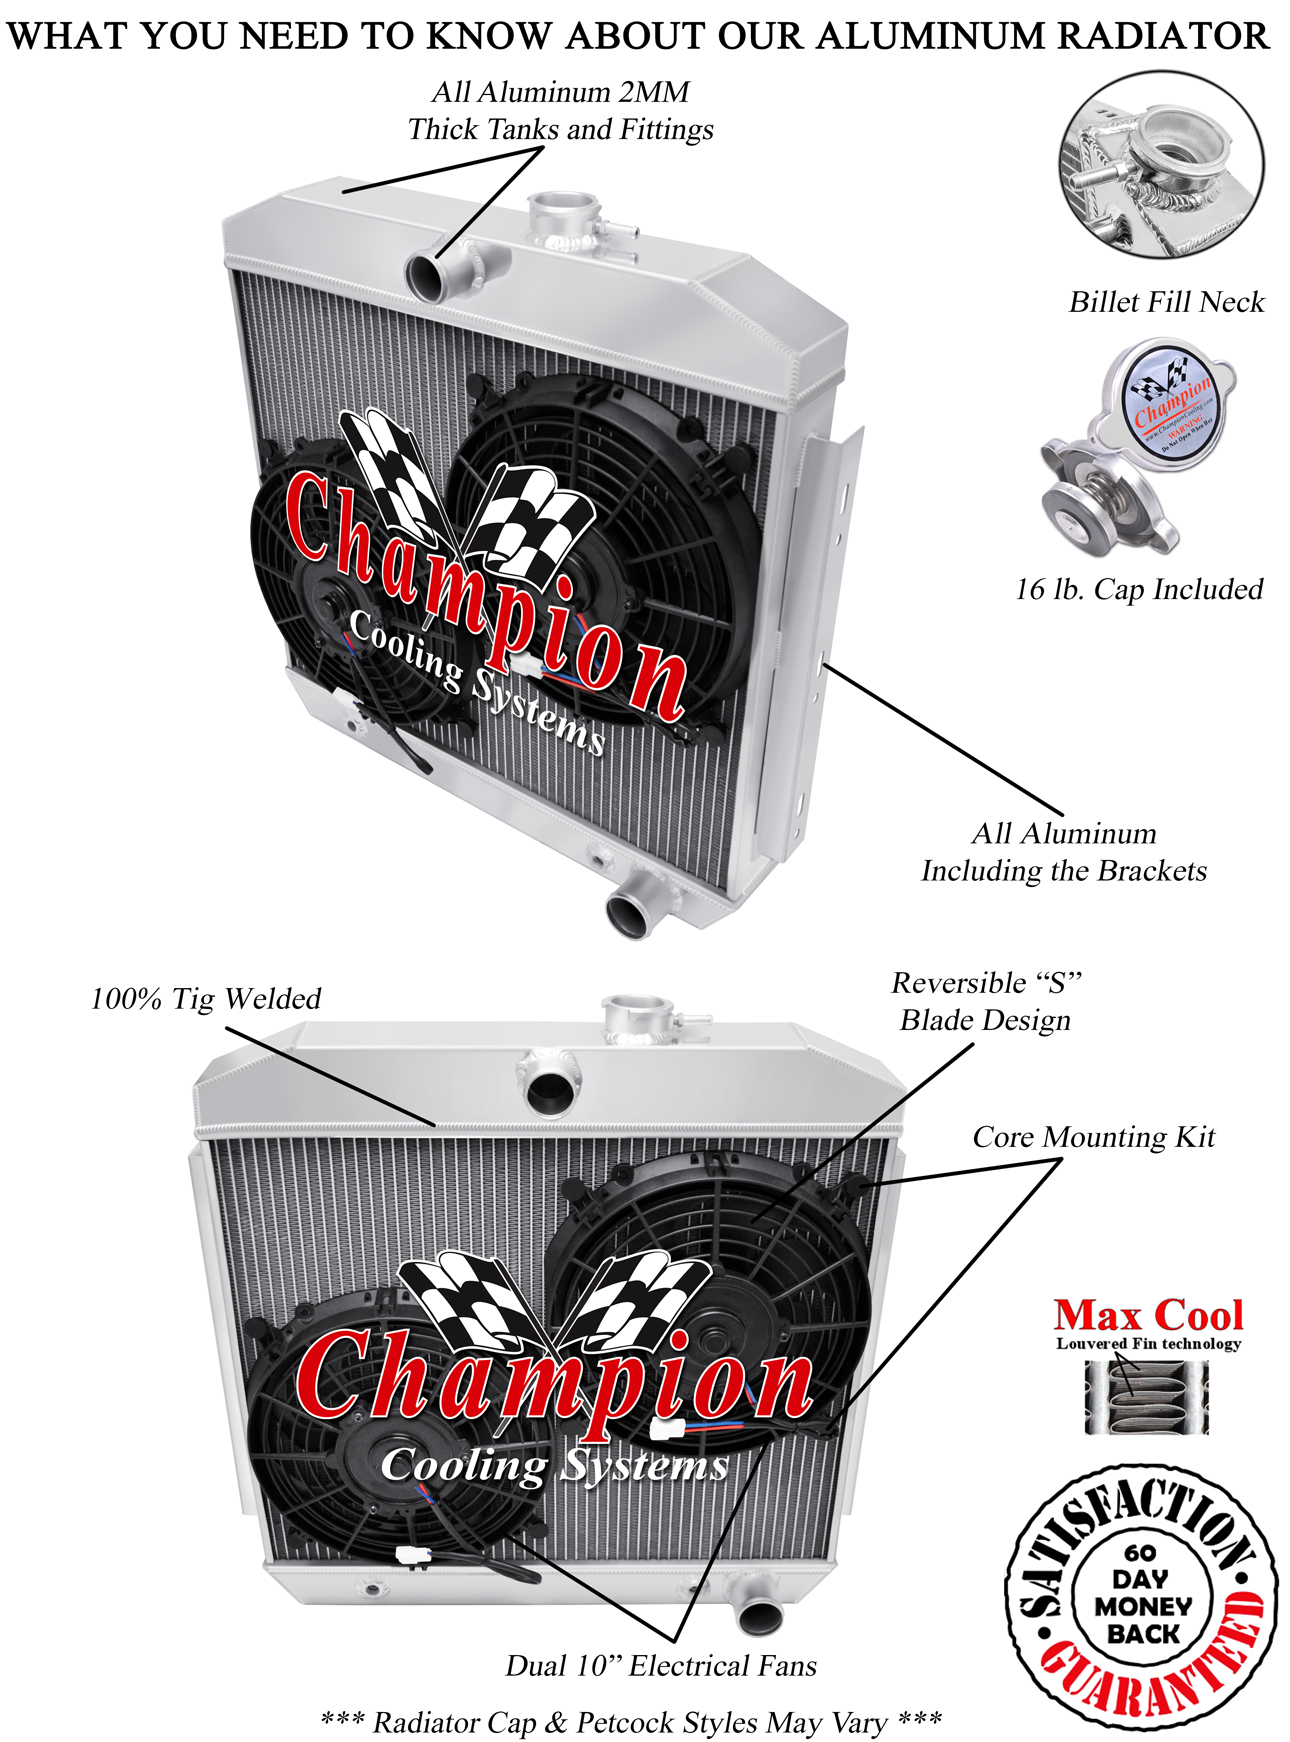 1955 1956 1957 chevy bel air aluminum radiator fan performance you will not find a better guarantee anywhere on ebay publicscrutiny Gallery